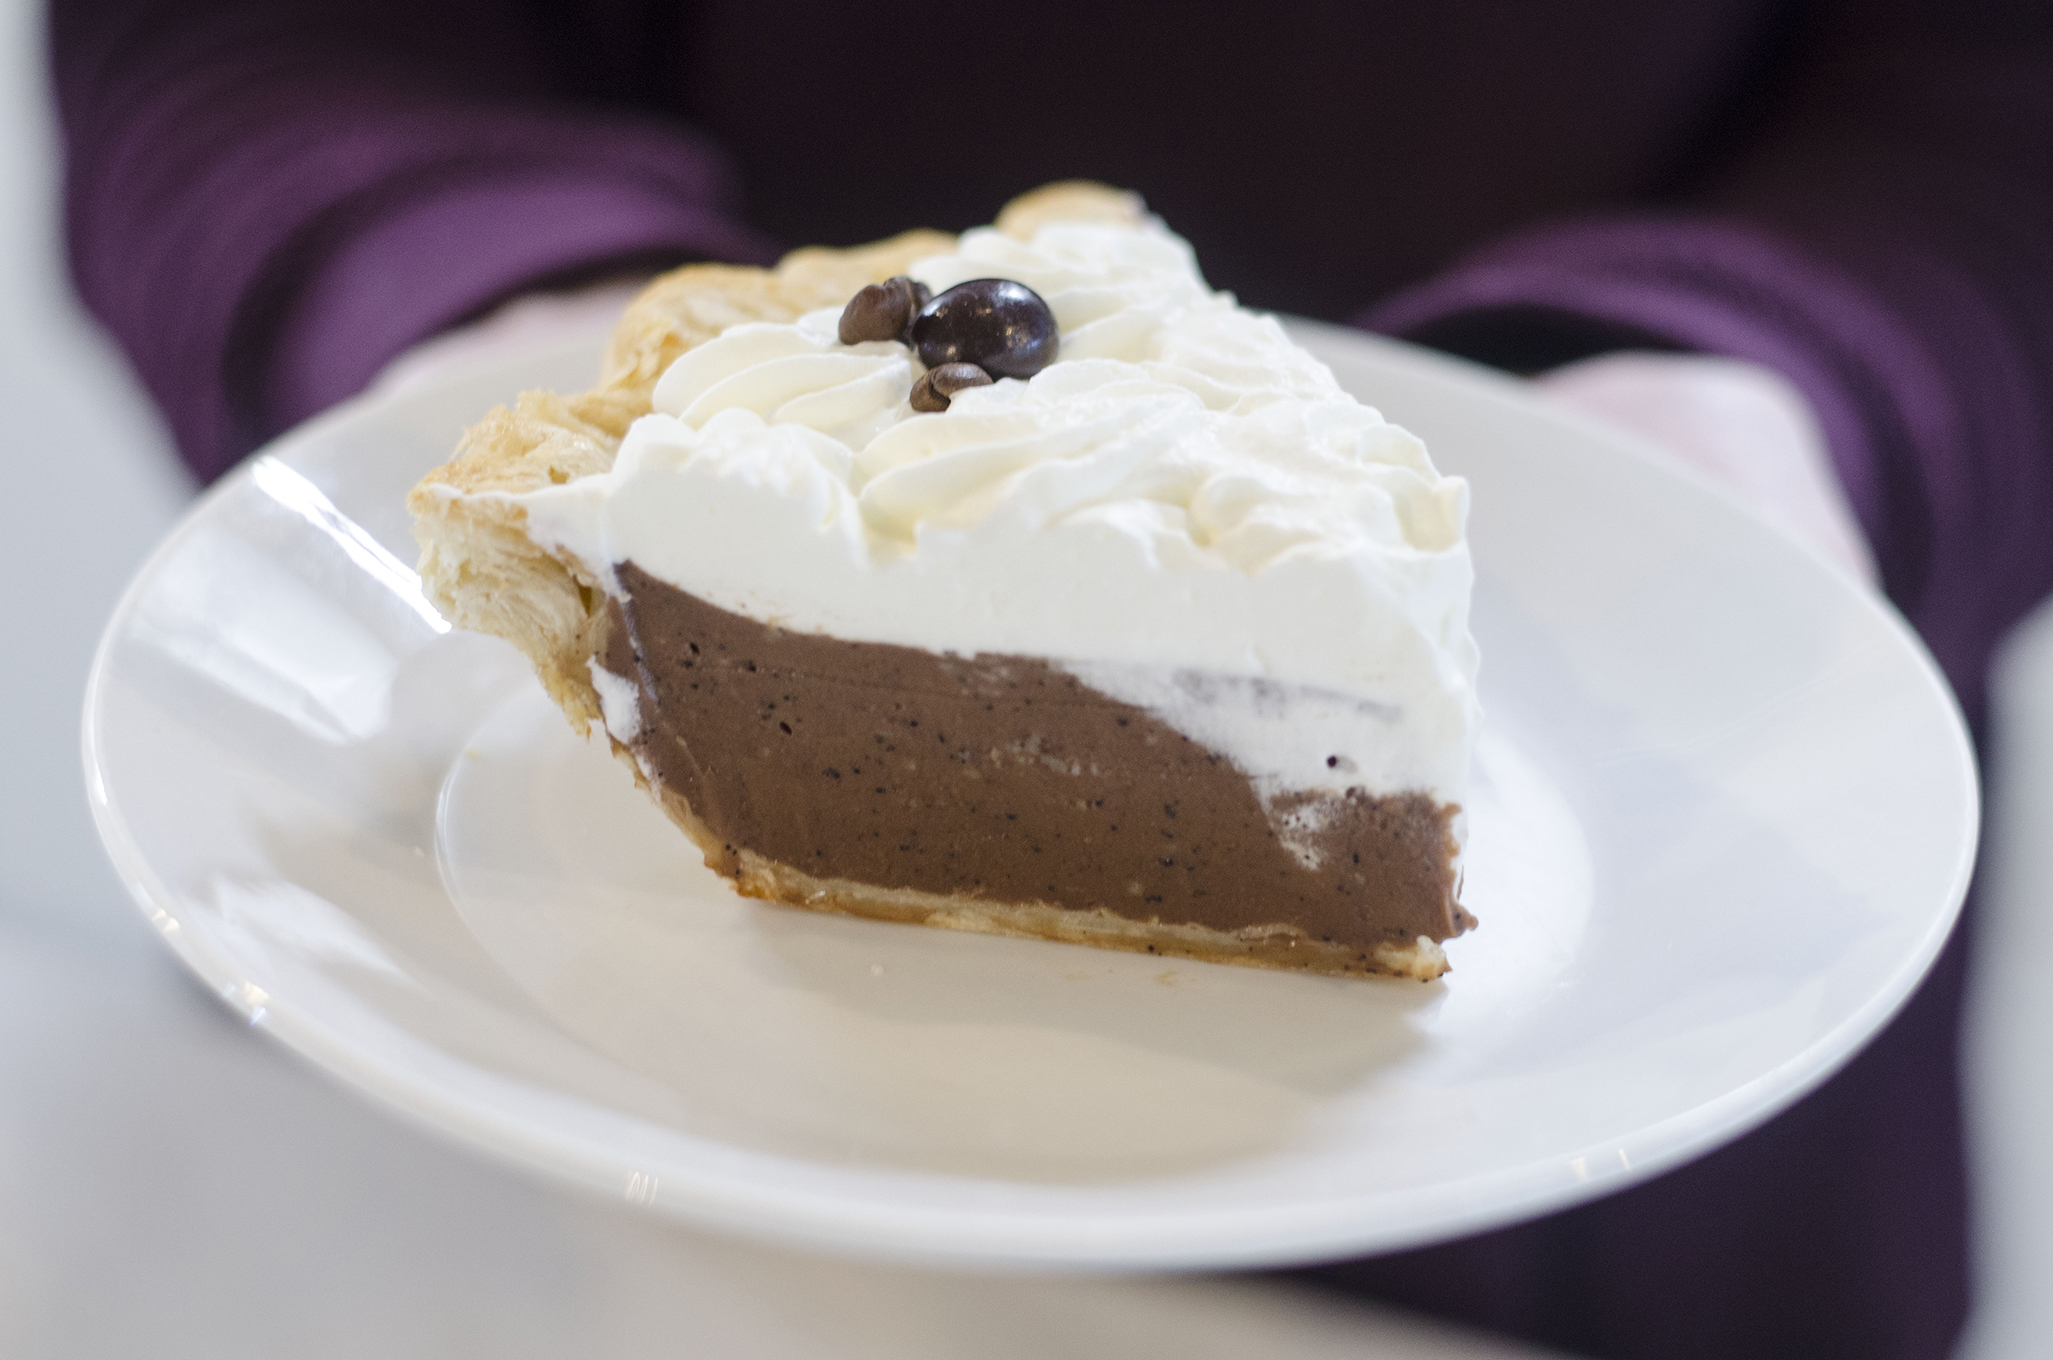 Mocha Cream Pie from Riverside Pie Cafe in Windsor, Ontario.